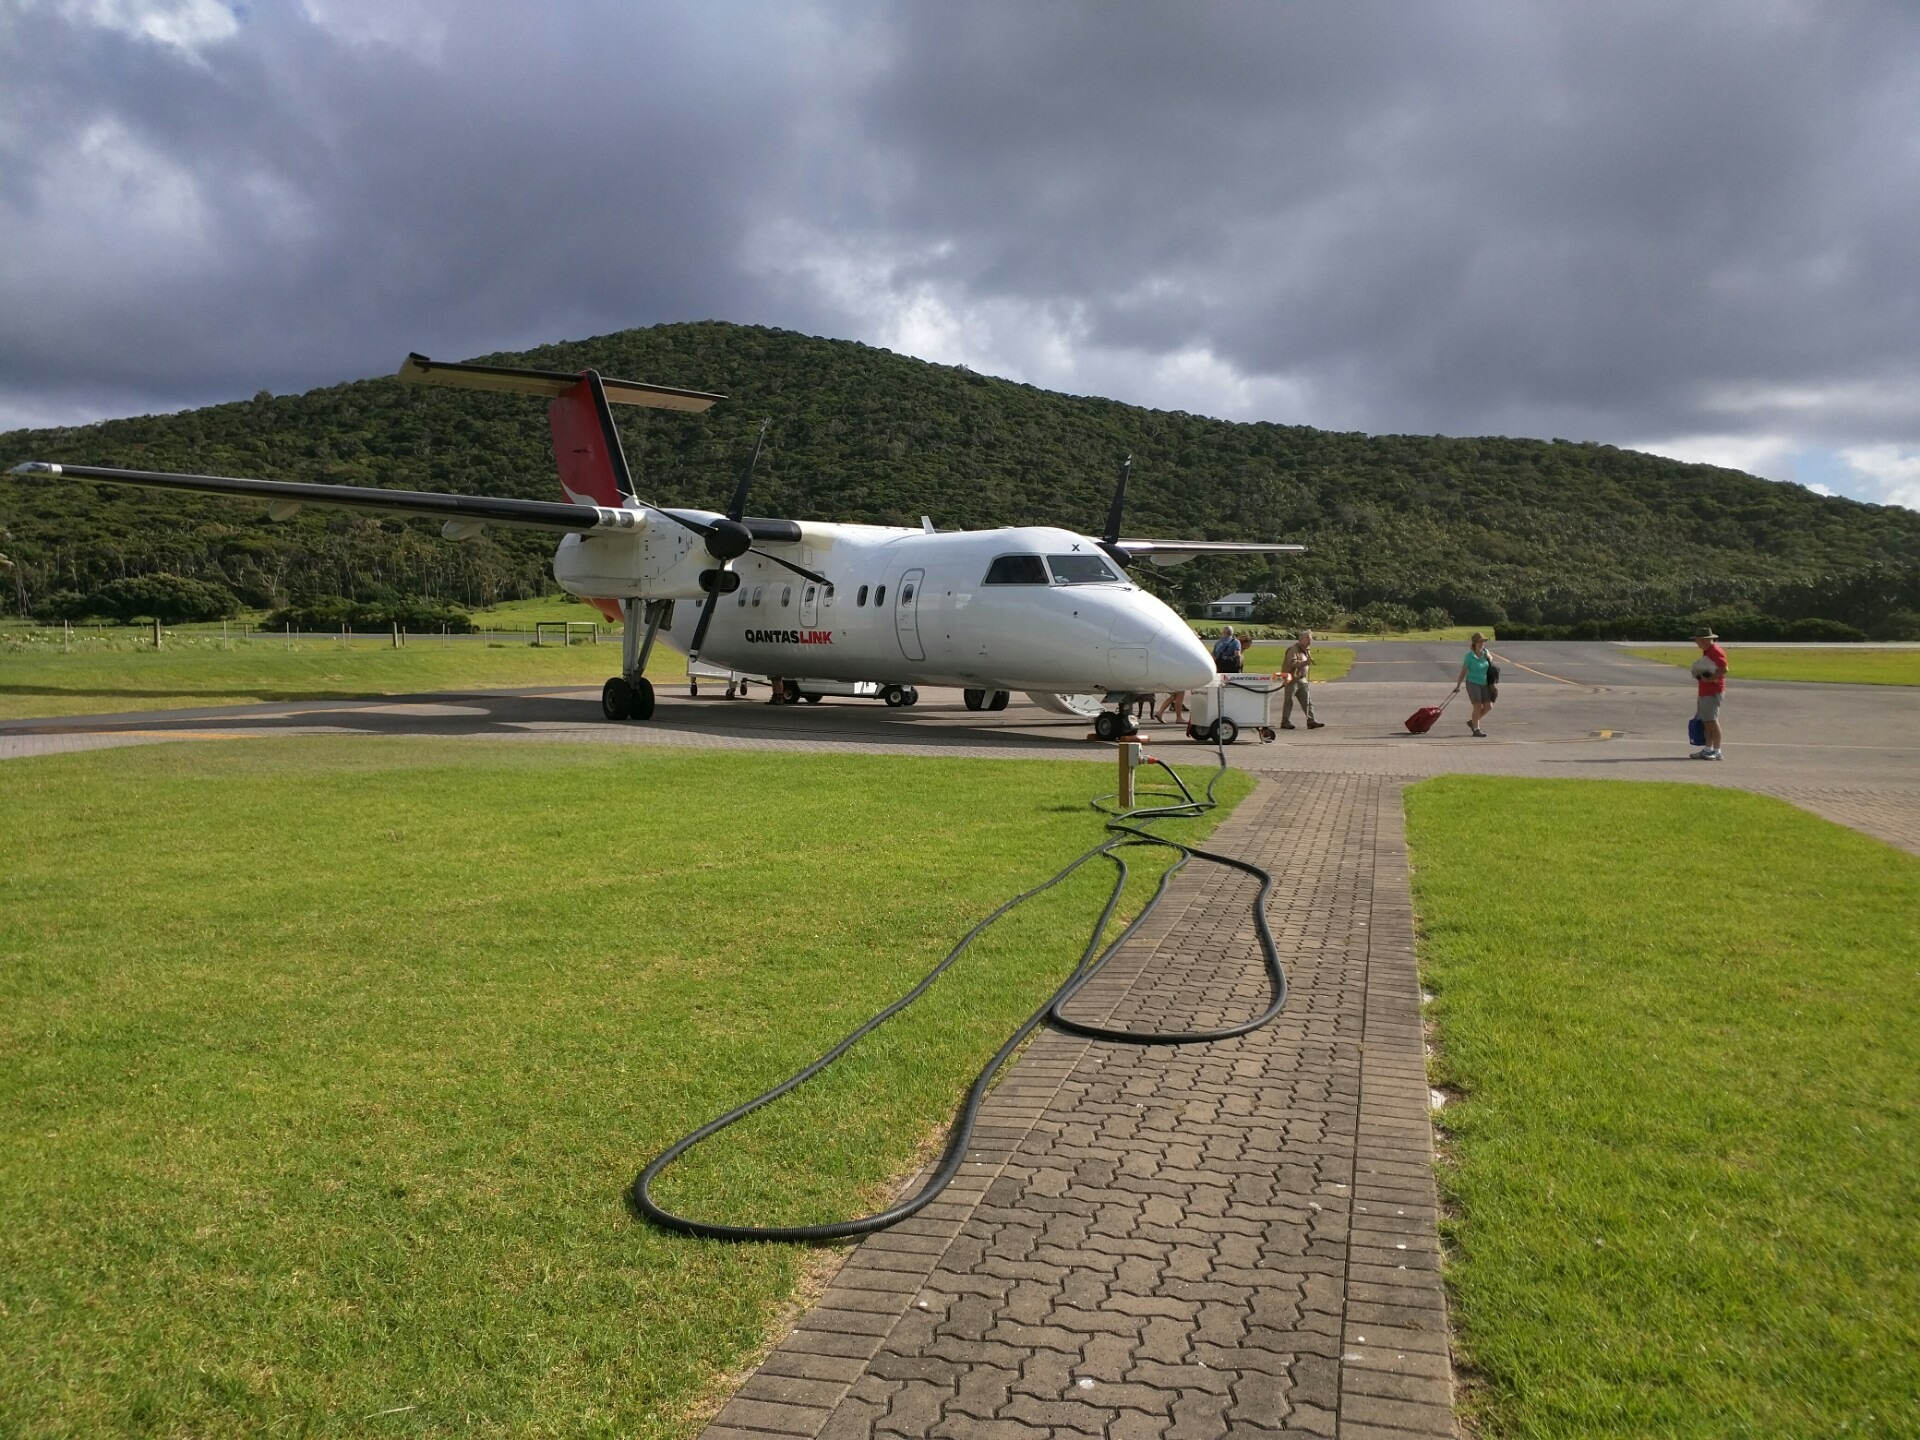 Our Dash-8 at the LHI Airstrip